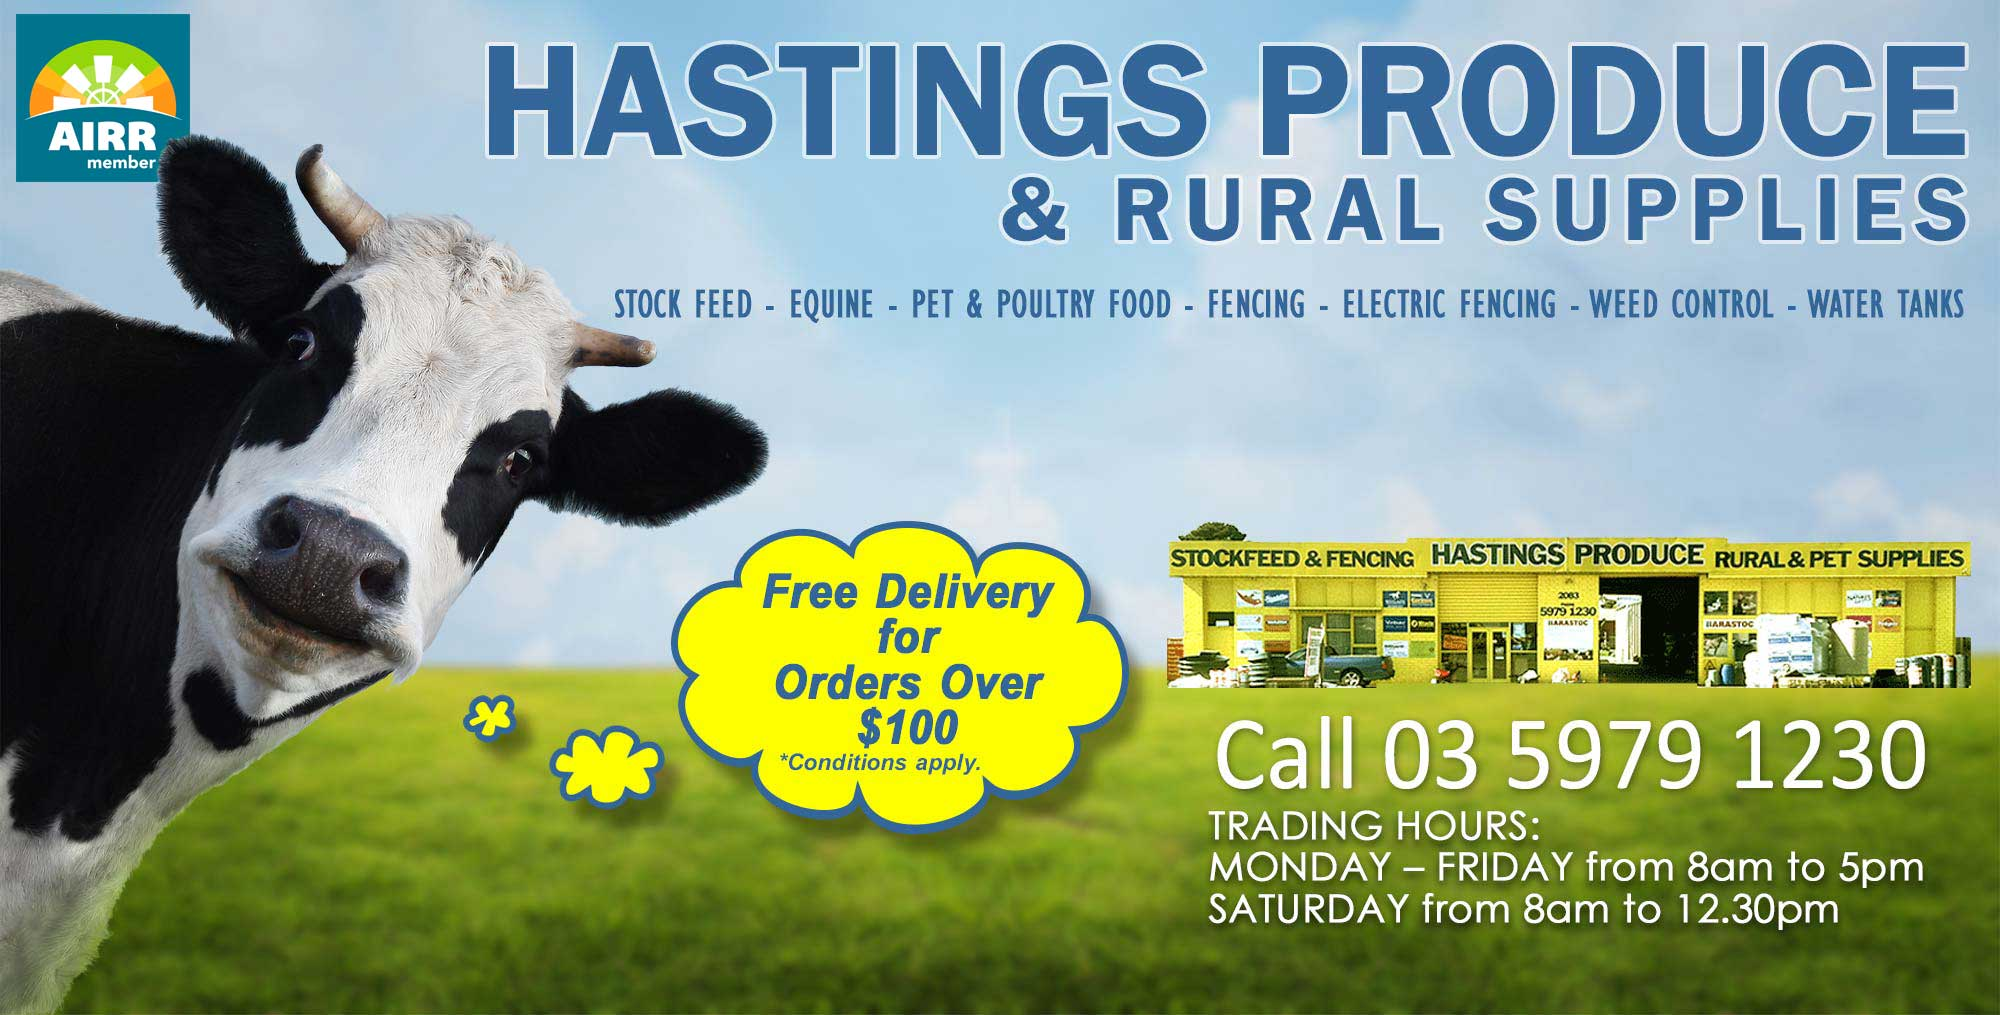 Hastings Produce and Rural Supplies